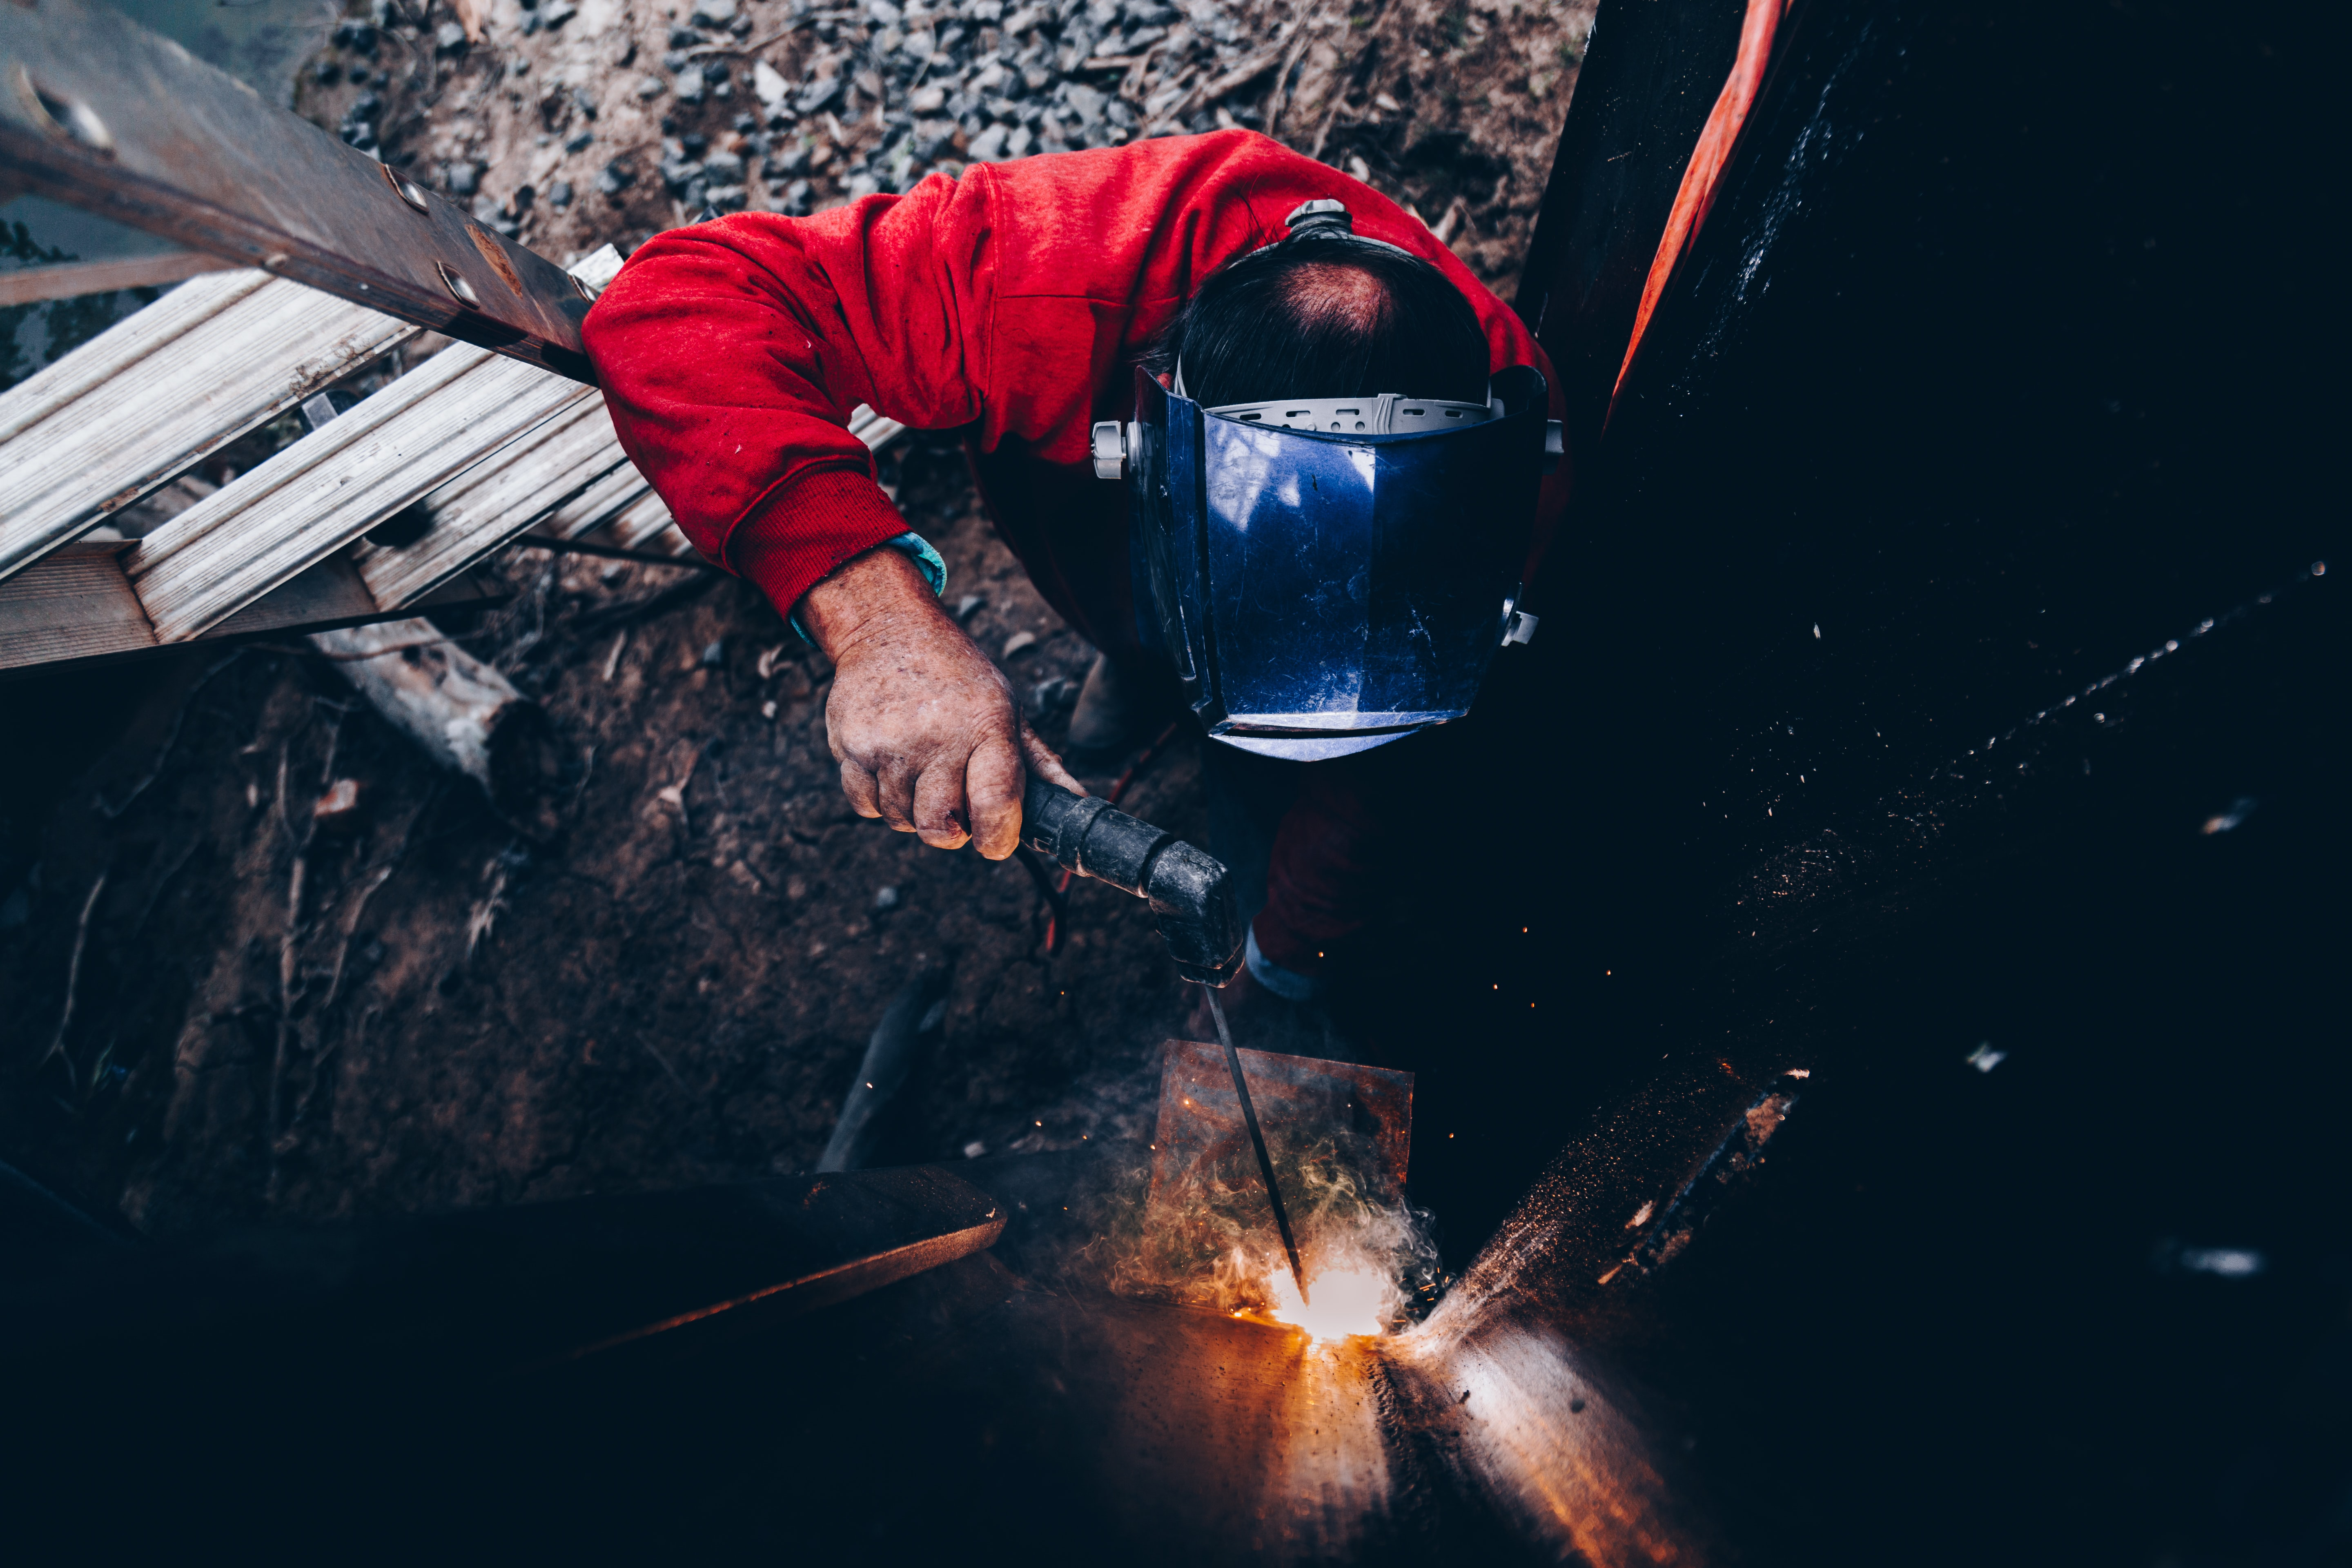 man holding welding machine and wearing welding mask